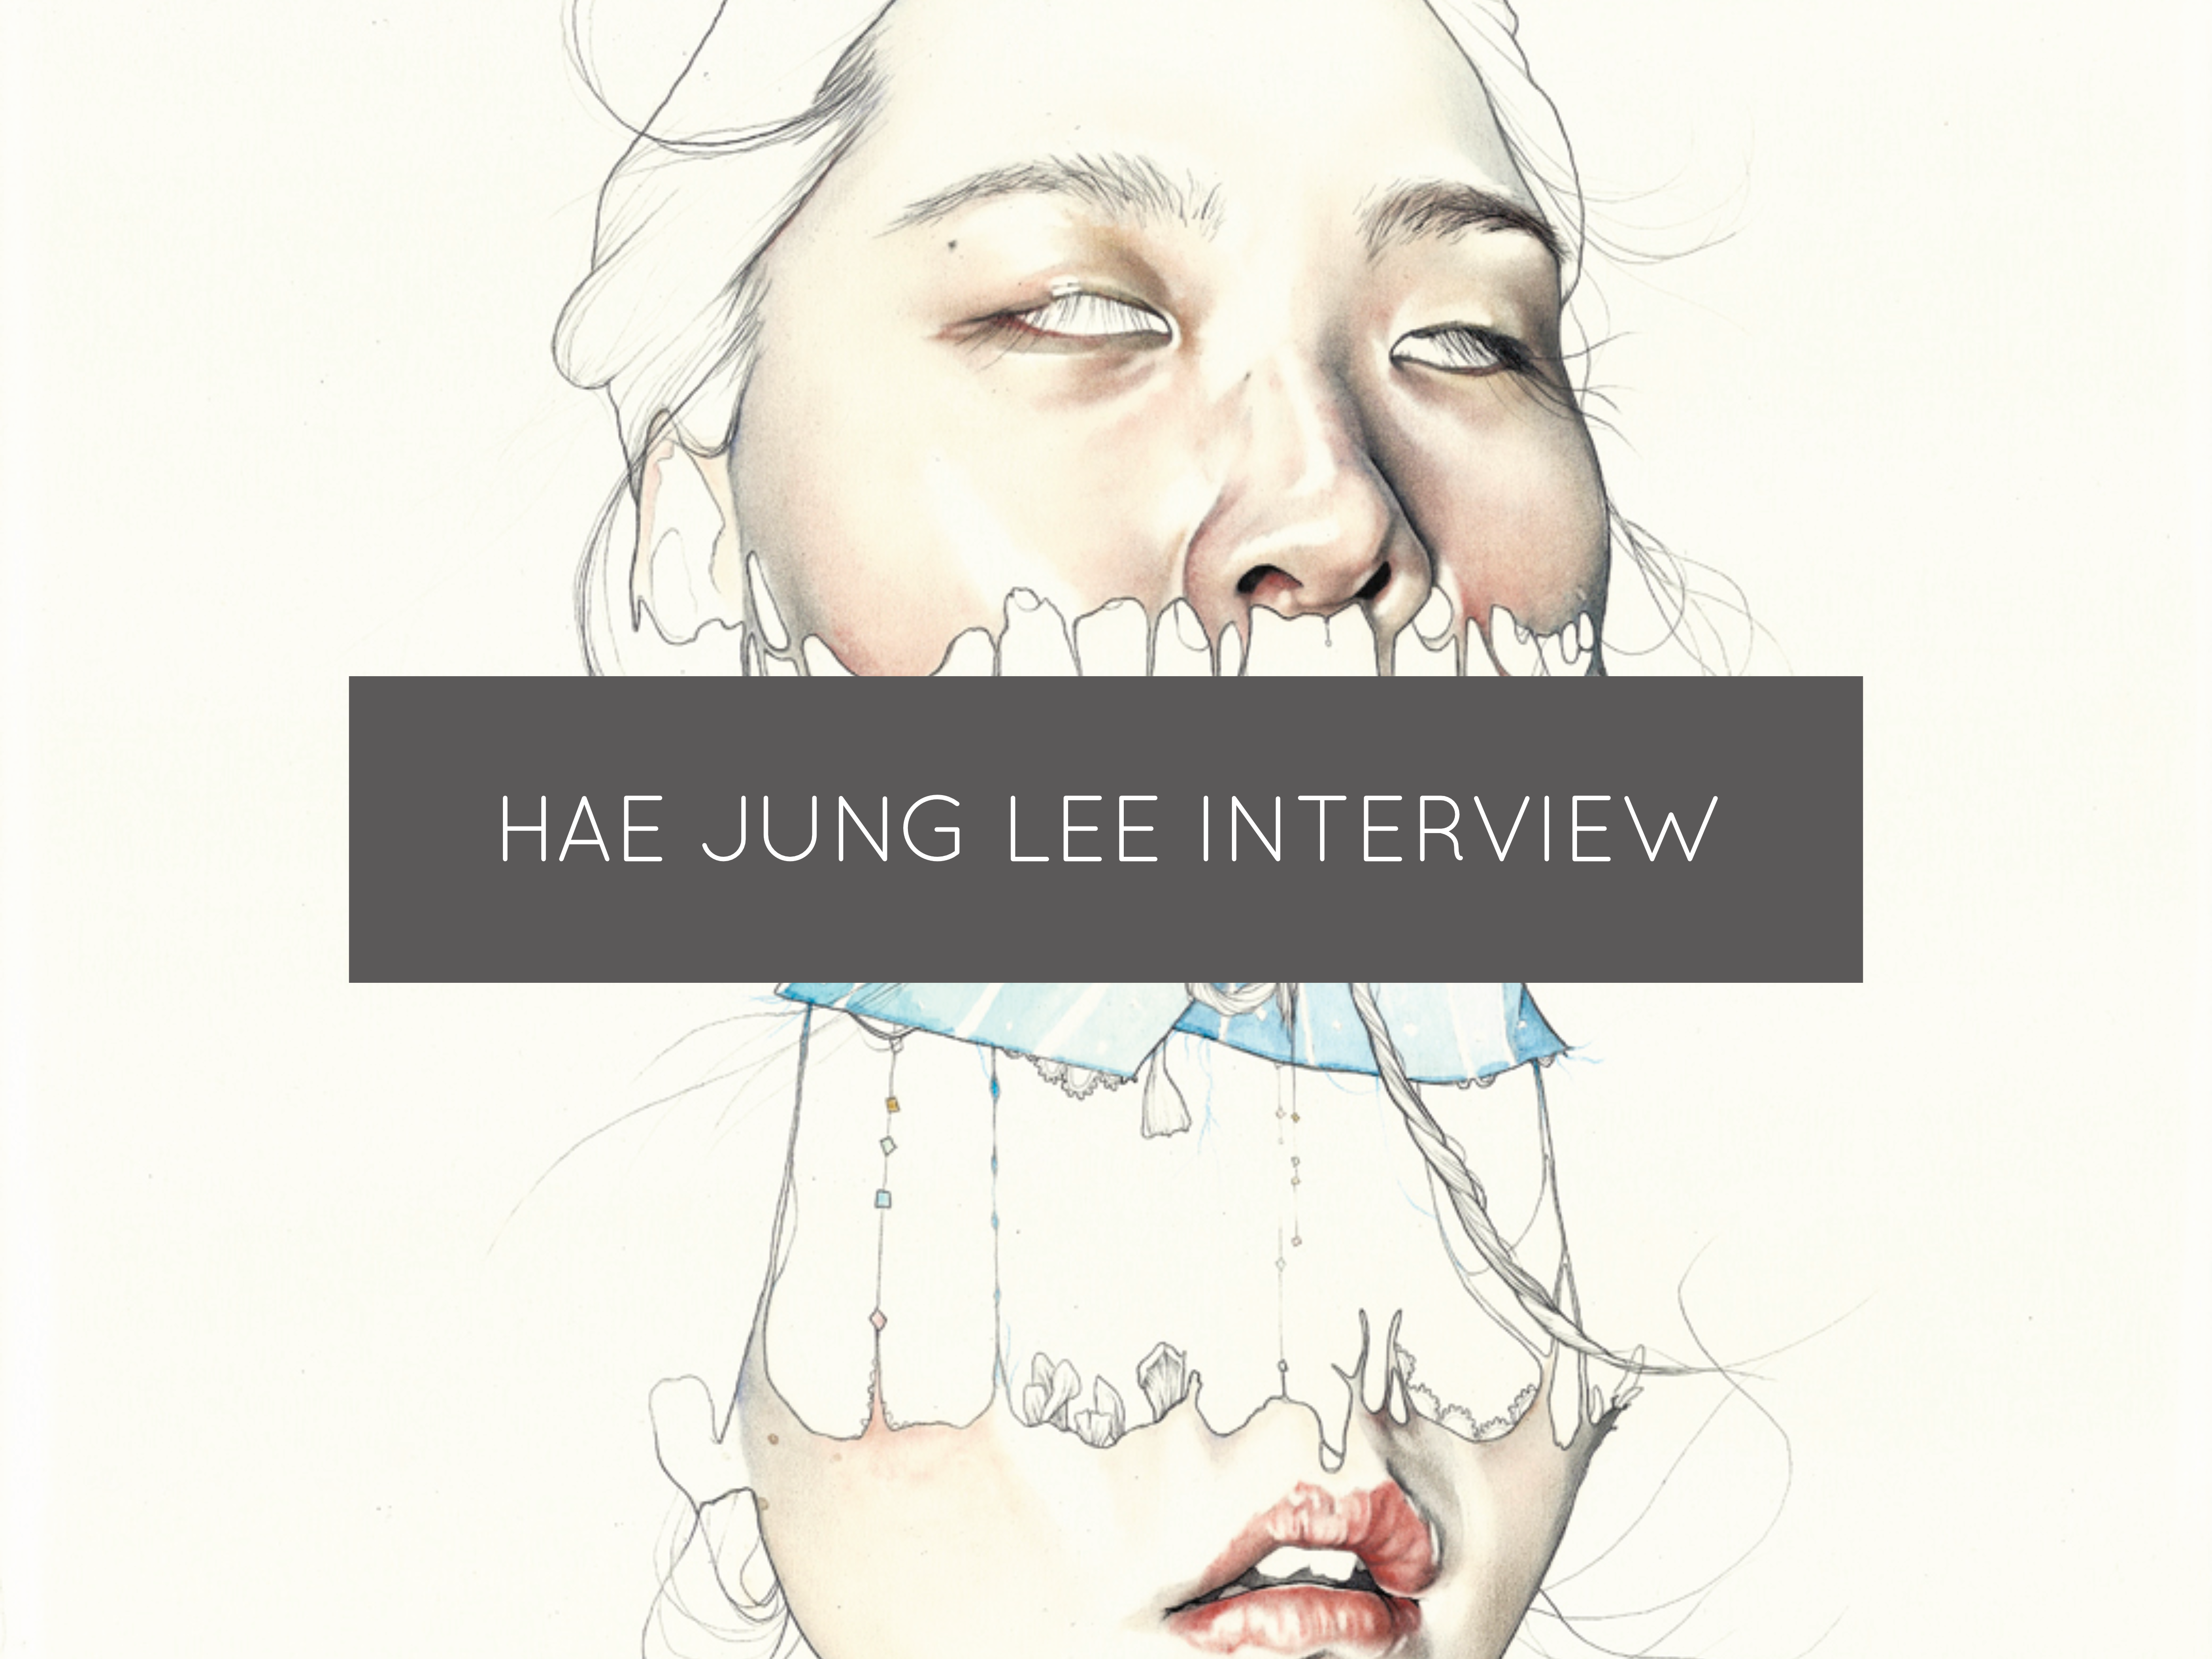 hae jung lee interview